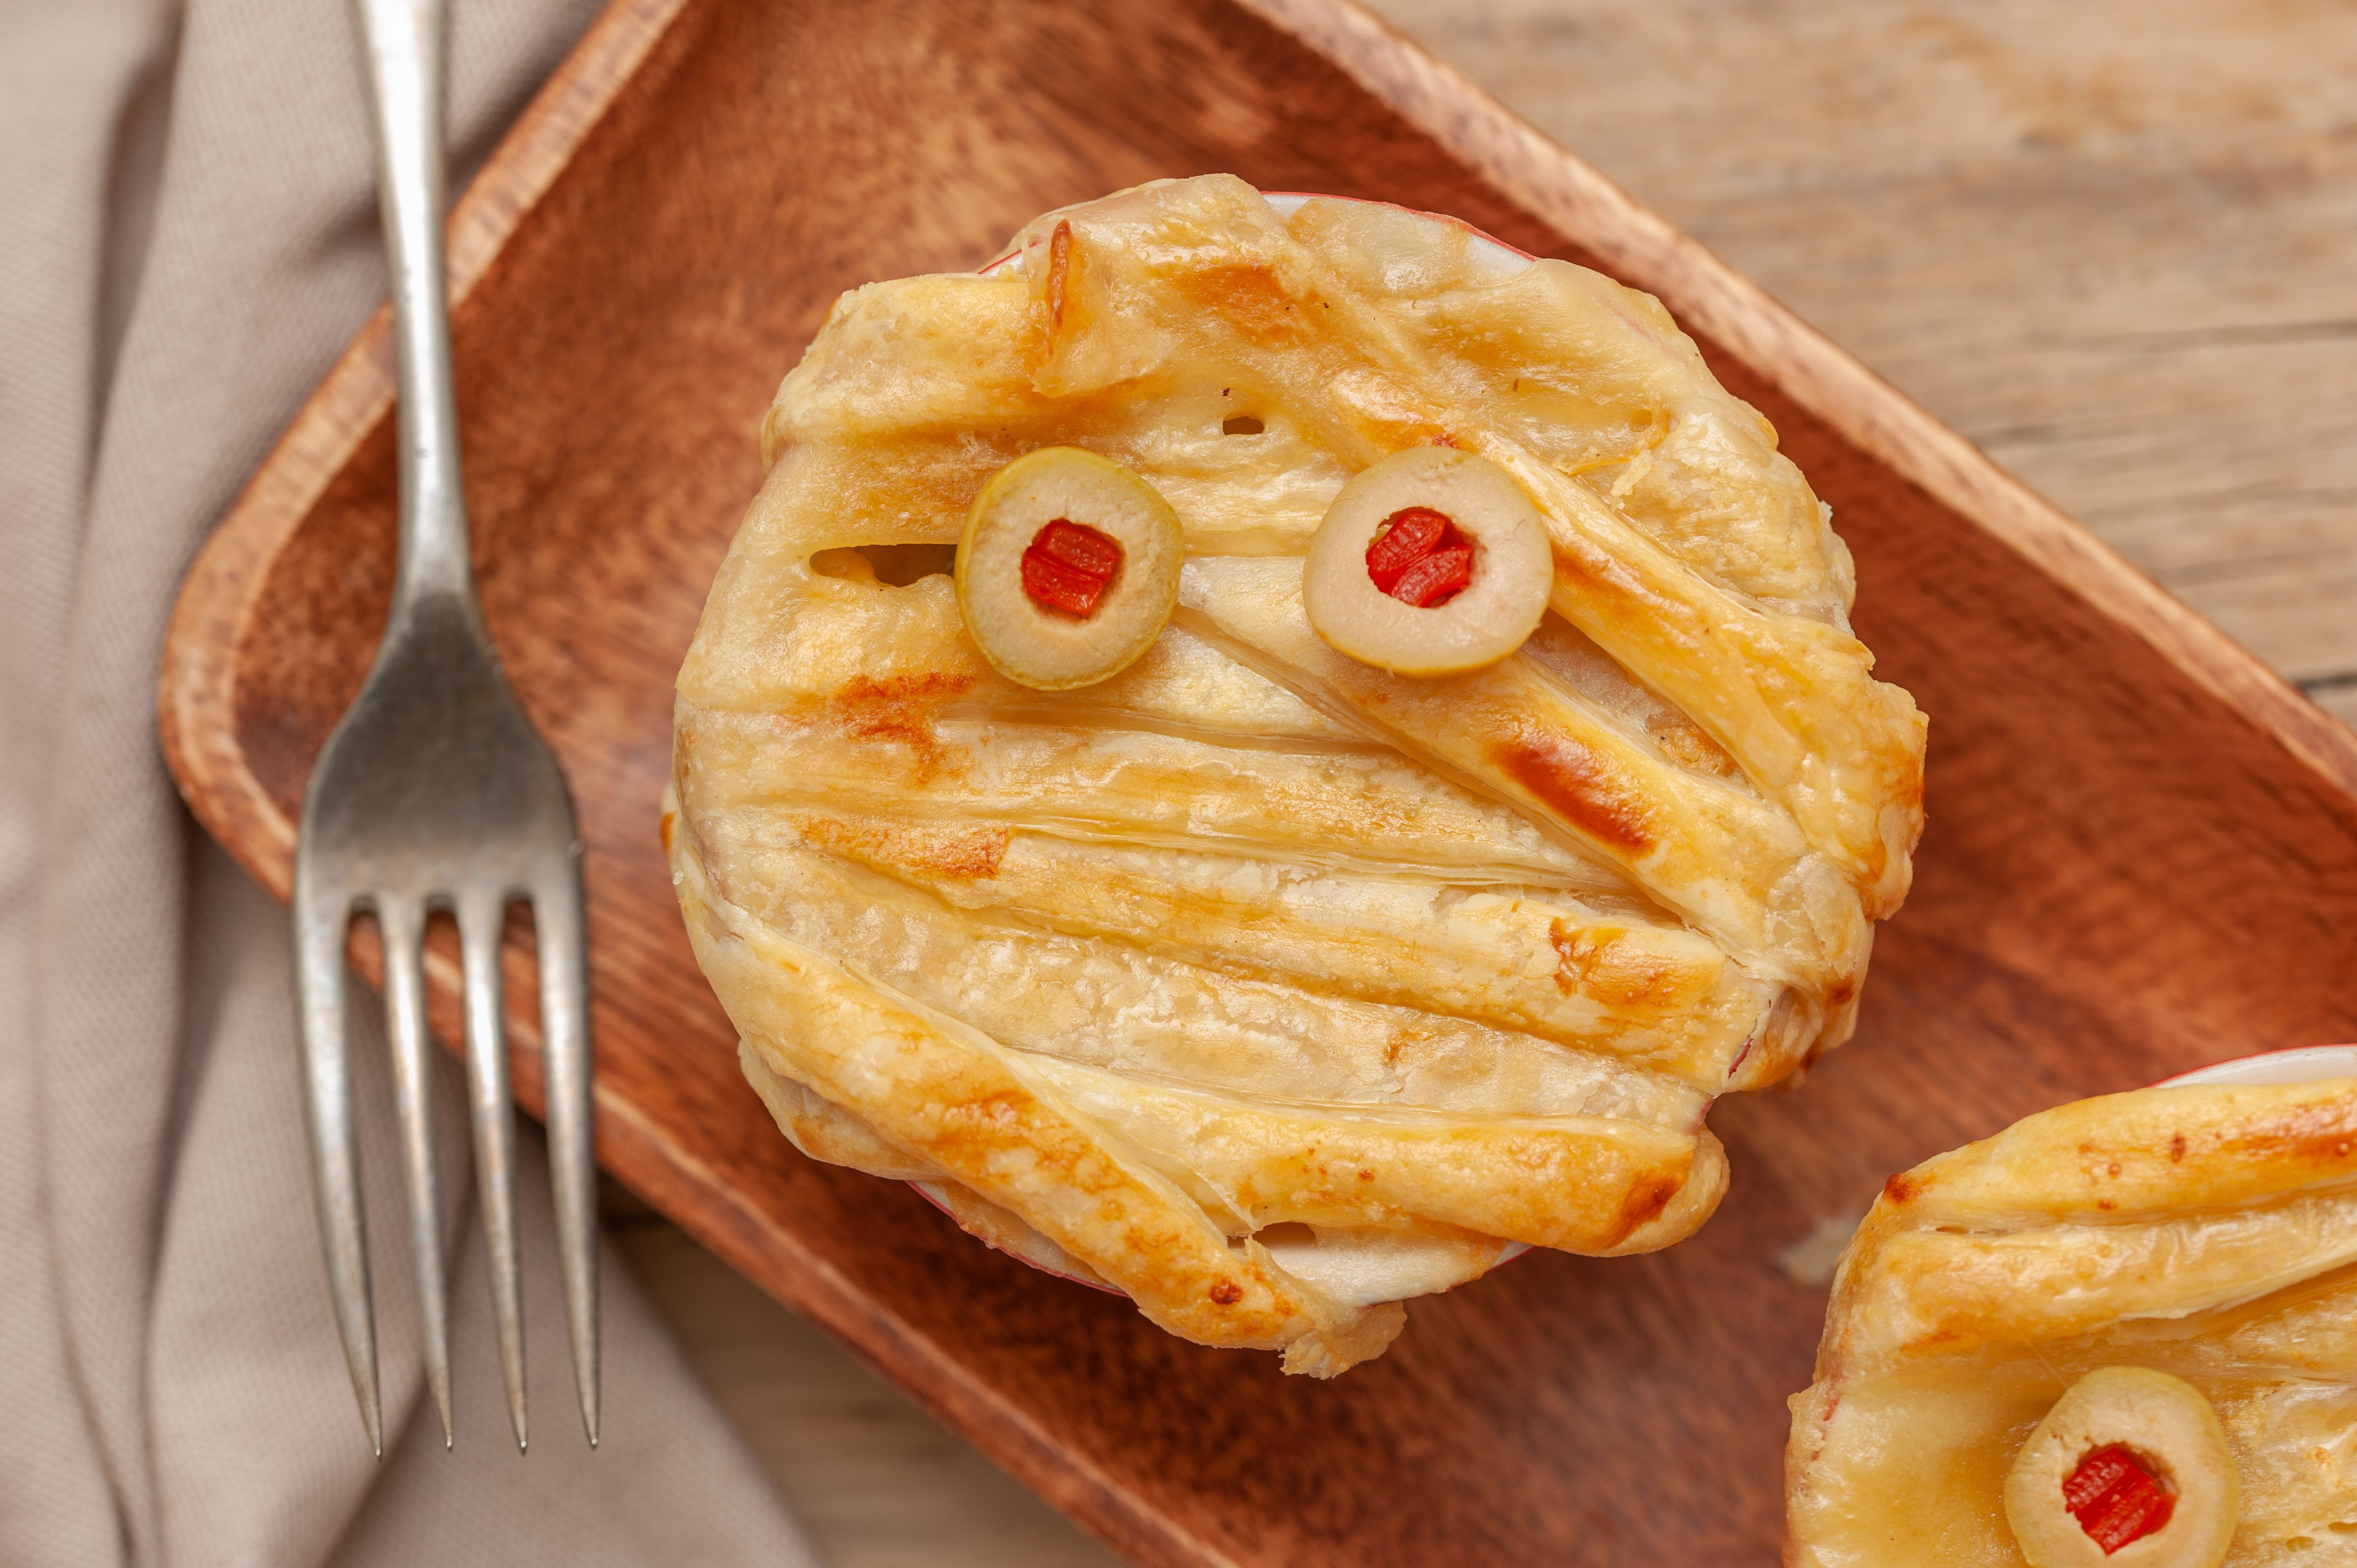 Cook Up a Ghoulishly Good Meal With 22 Halloween Dinner Ideas